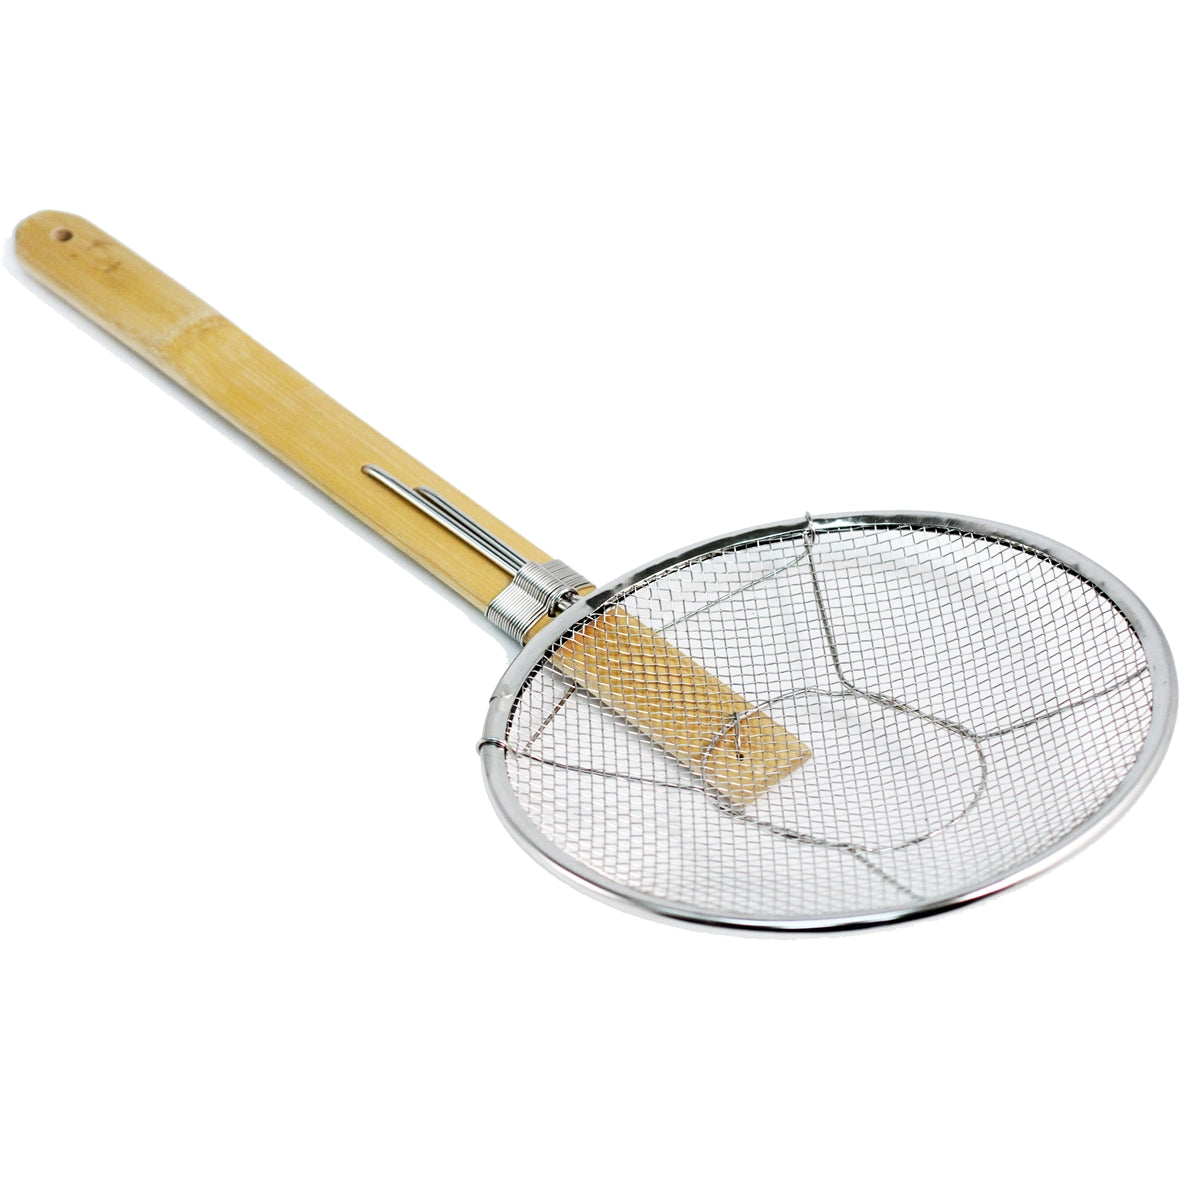 "Stainless Steel Noodle Spider Strainer 8.25"" Dia"